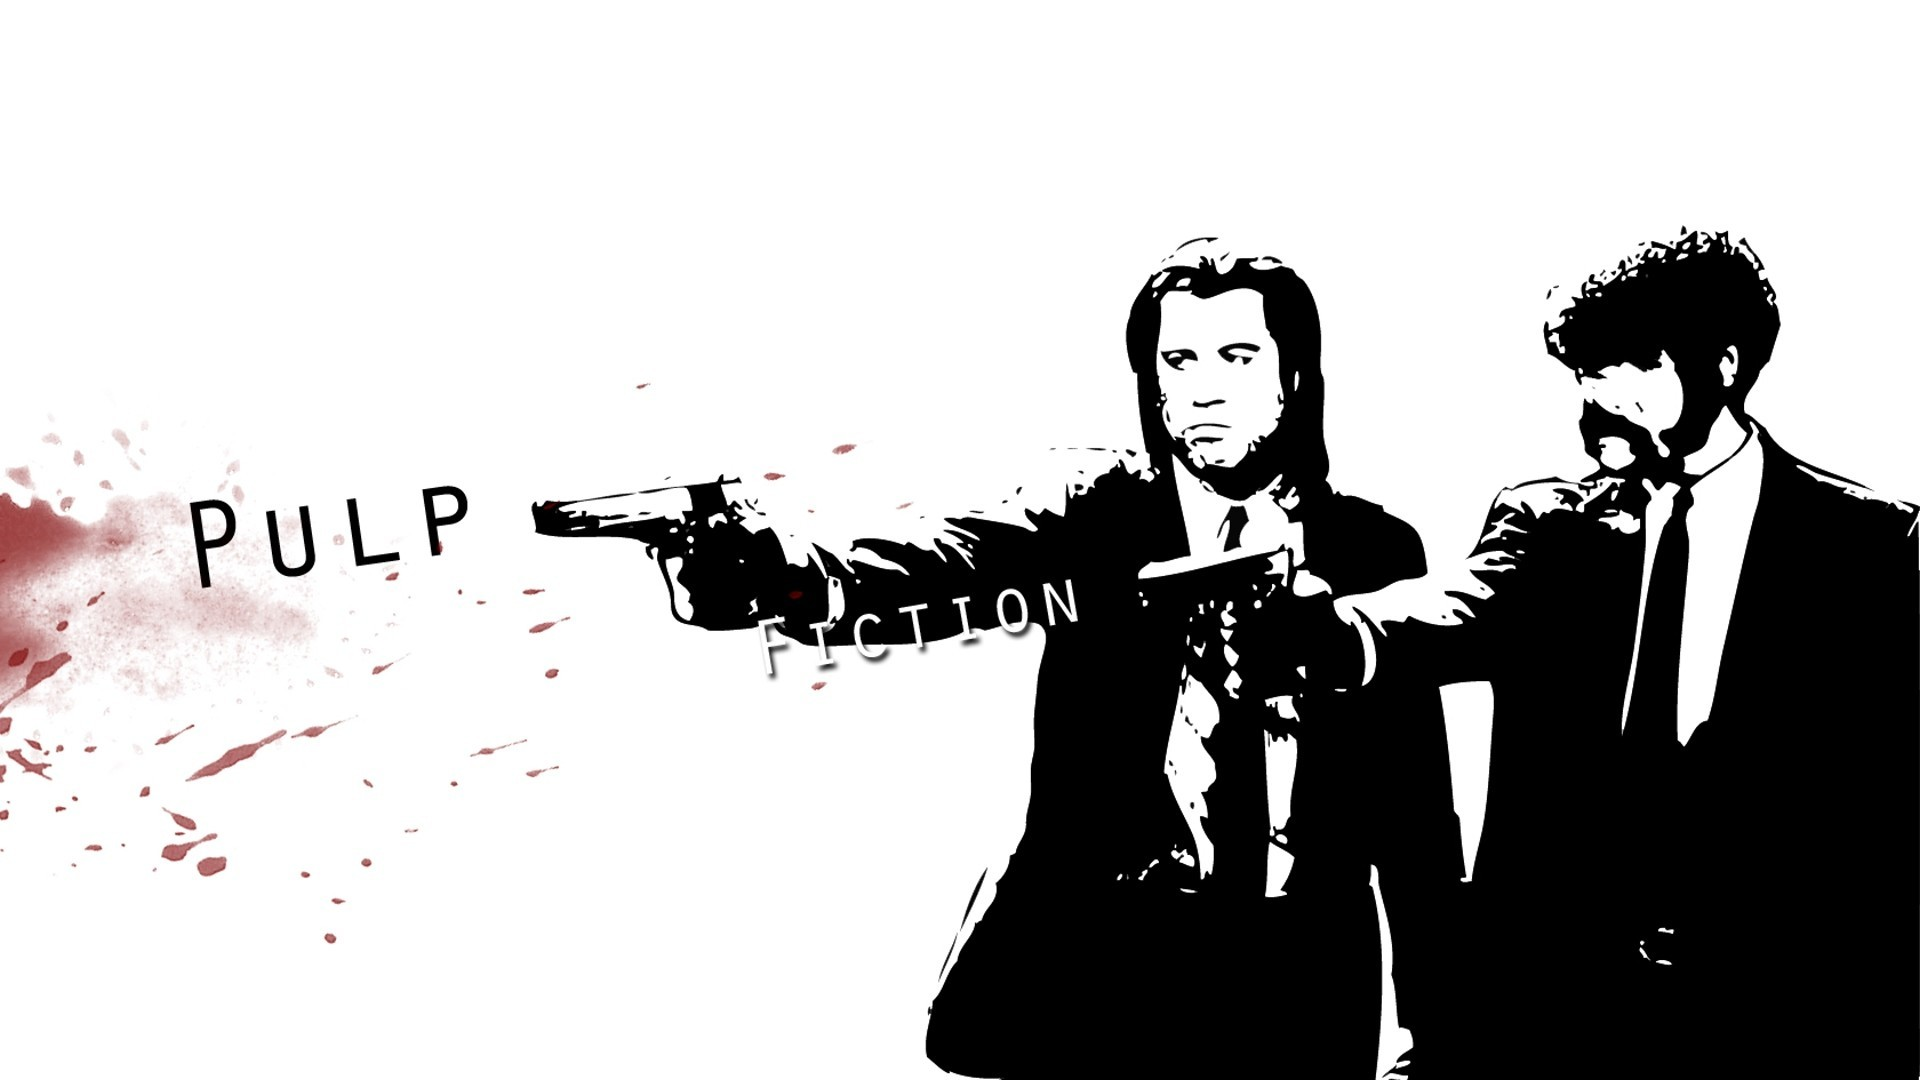 Bit Pulp Fiction iPhone Wallpaper ID